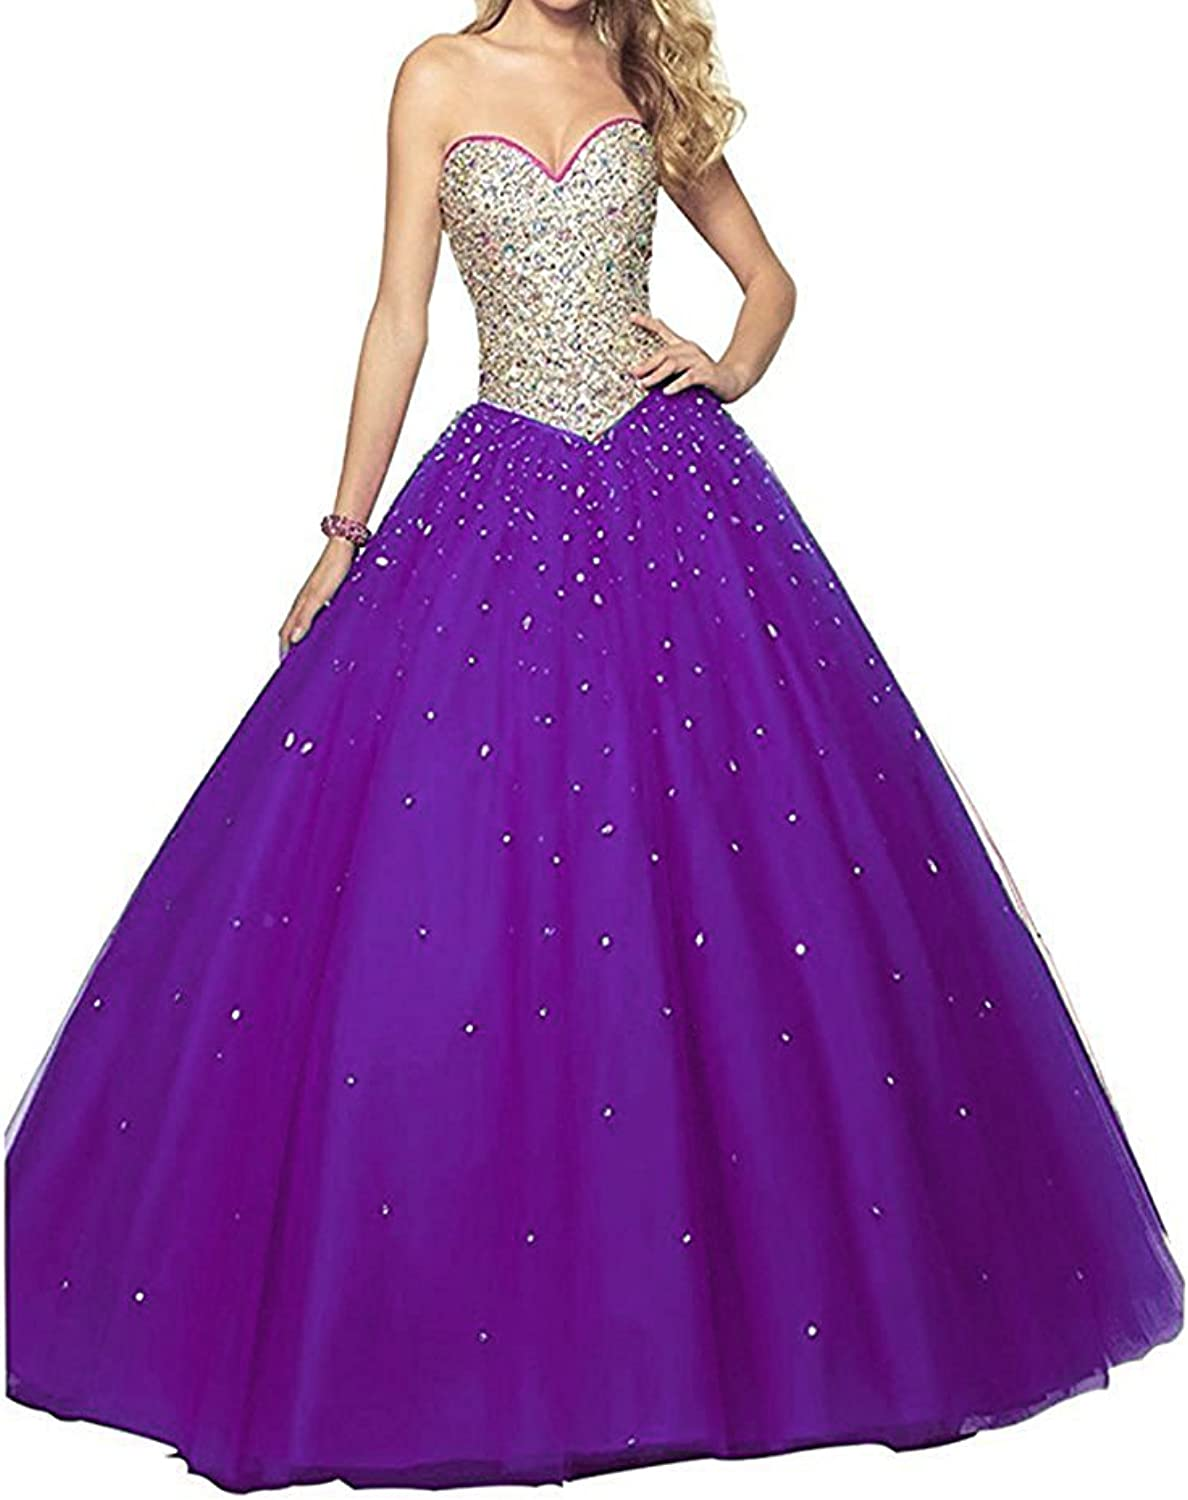 Mypurplec Women's Sweetheart Beading Quinceanera Dresses Long 2017 Prom Party Ball Gown MY124